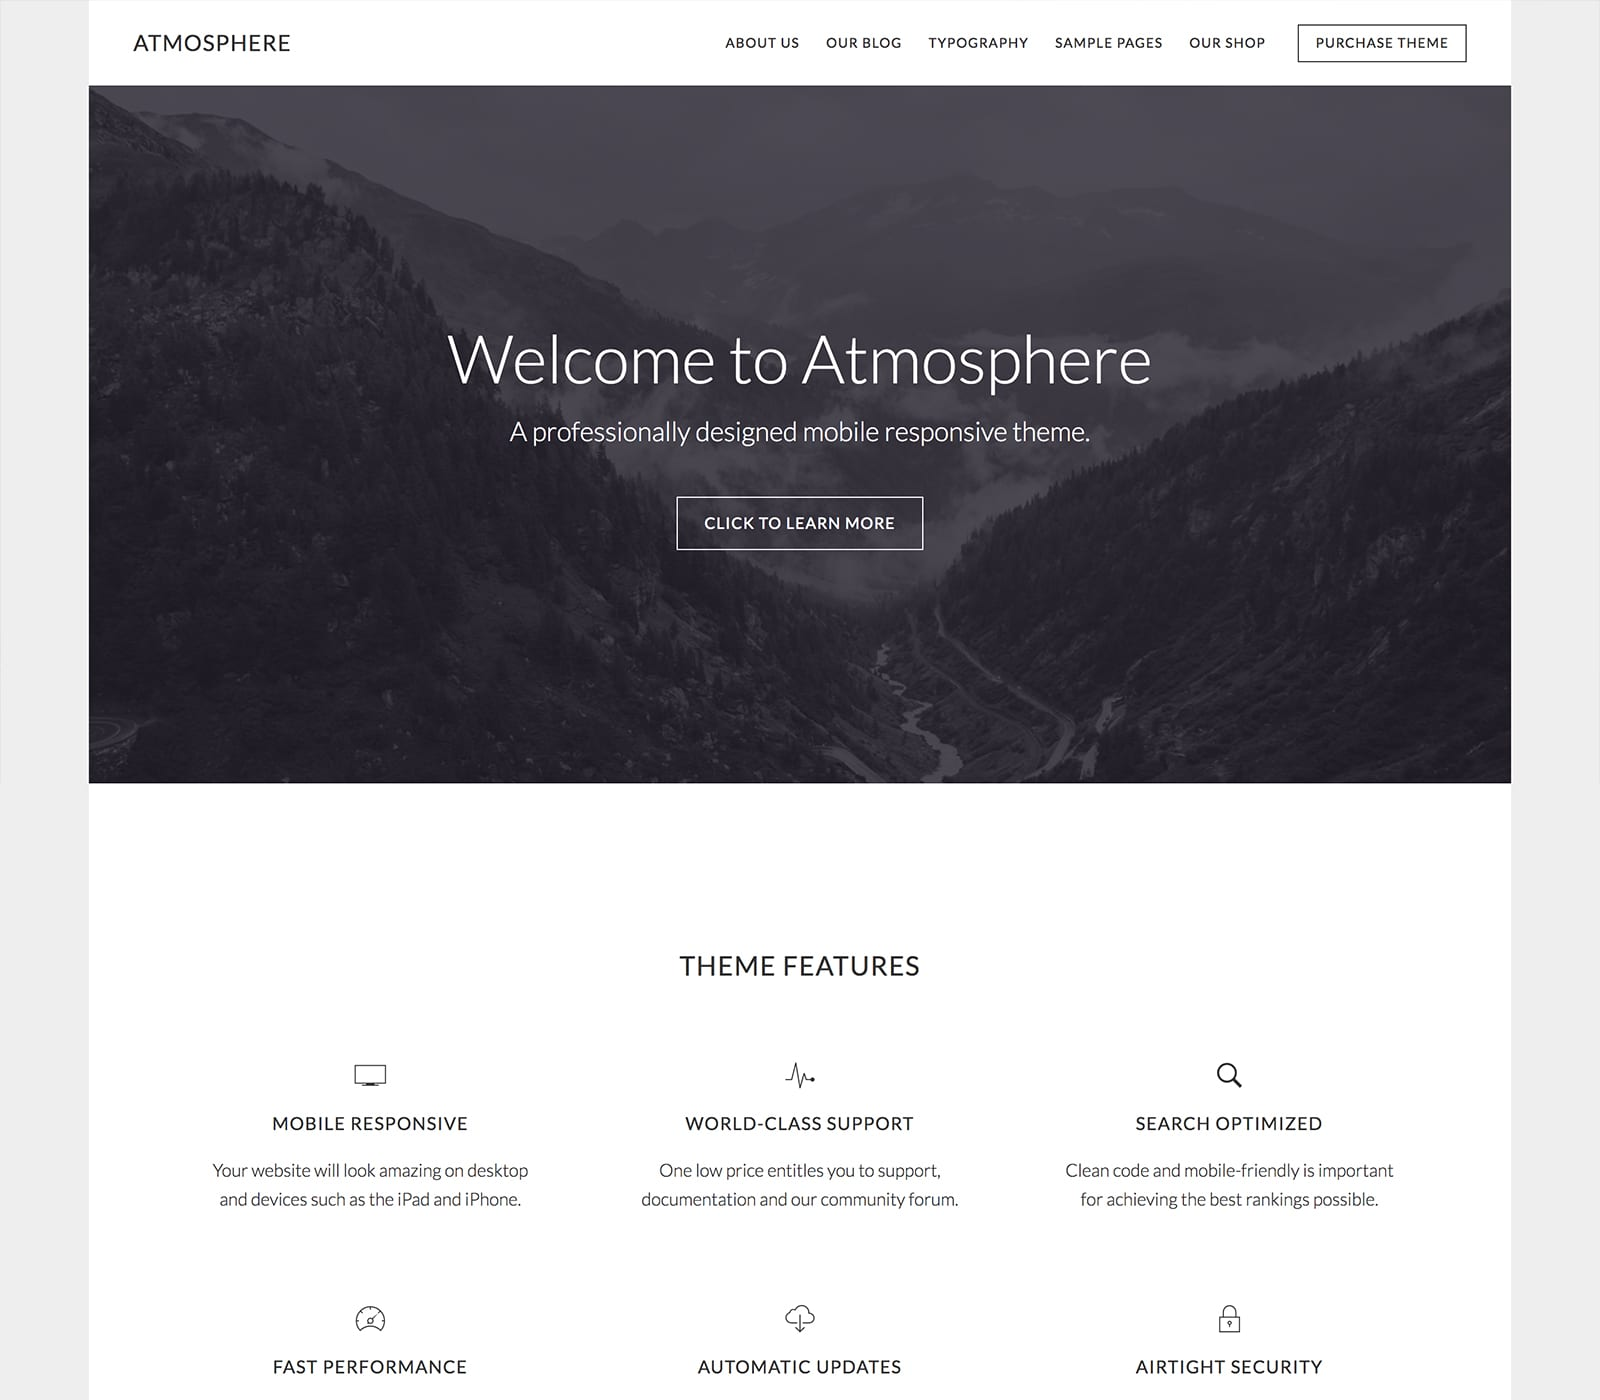 When you're ready for a theme with the utmost ambiance, take a peek at Atmosphere Pro. Your visitors will digest your content delightfully — both in your imagery and your written words — when you use Atmosphere Pro's wide-open spaces and beautiful contrasts.